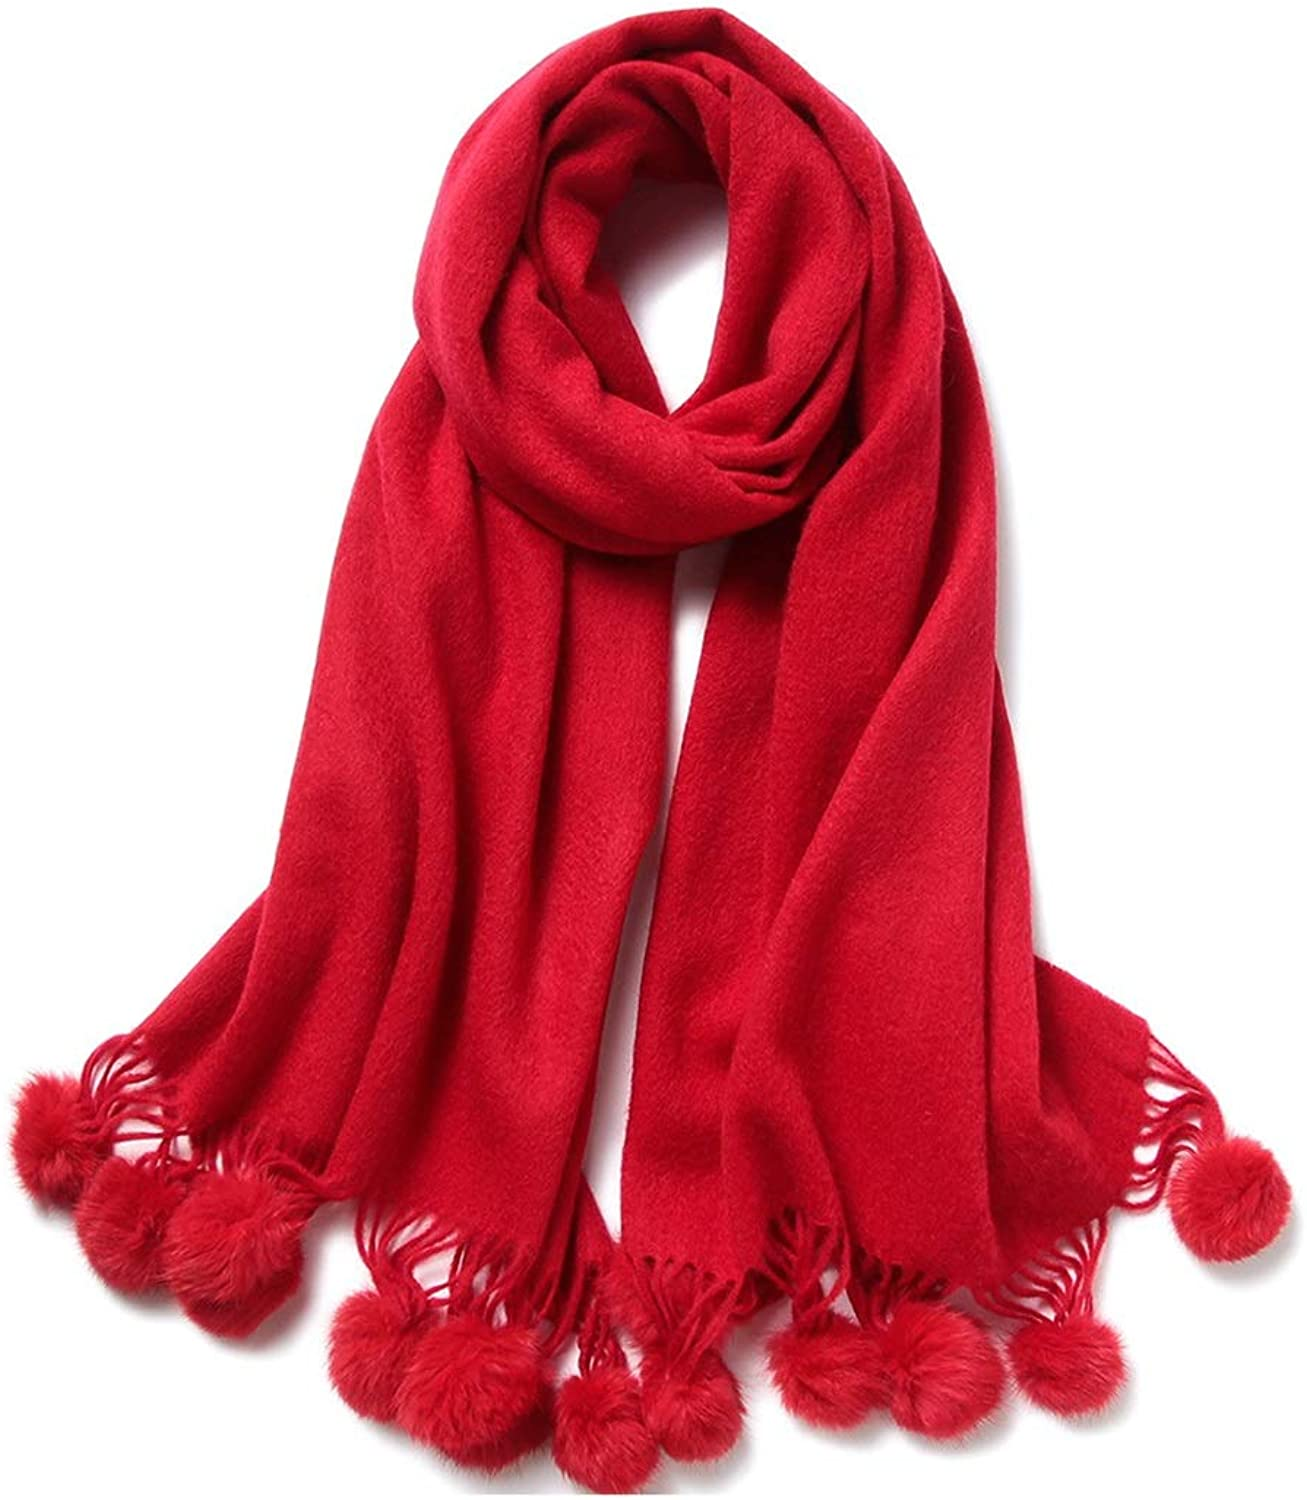 CEFULTY Wool Scarf Women Europe and The United States Style Pure color Hanging Ball Warm Shawl for Women (color   Red, Size   70cm180cm)